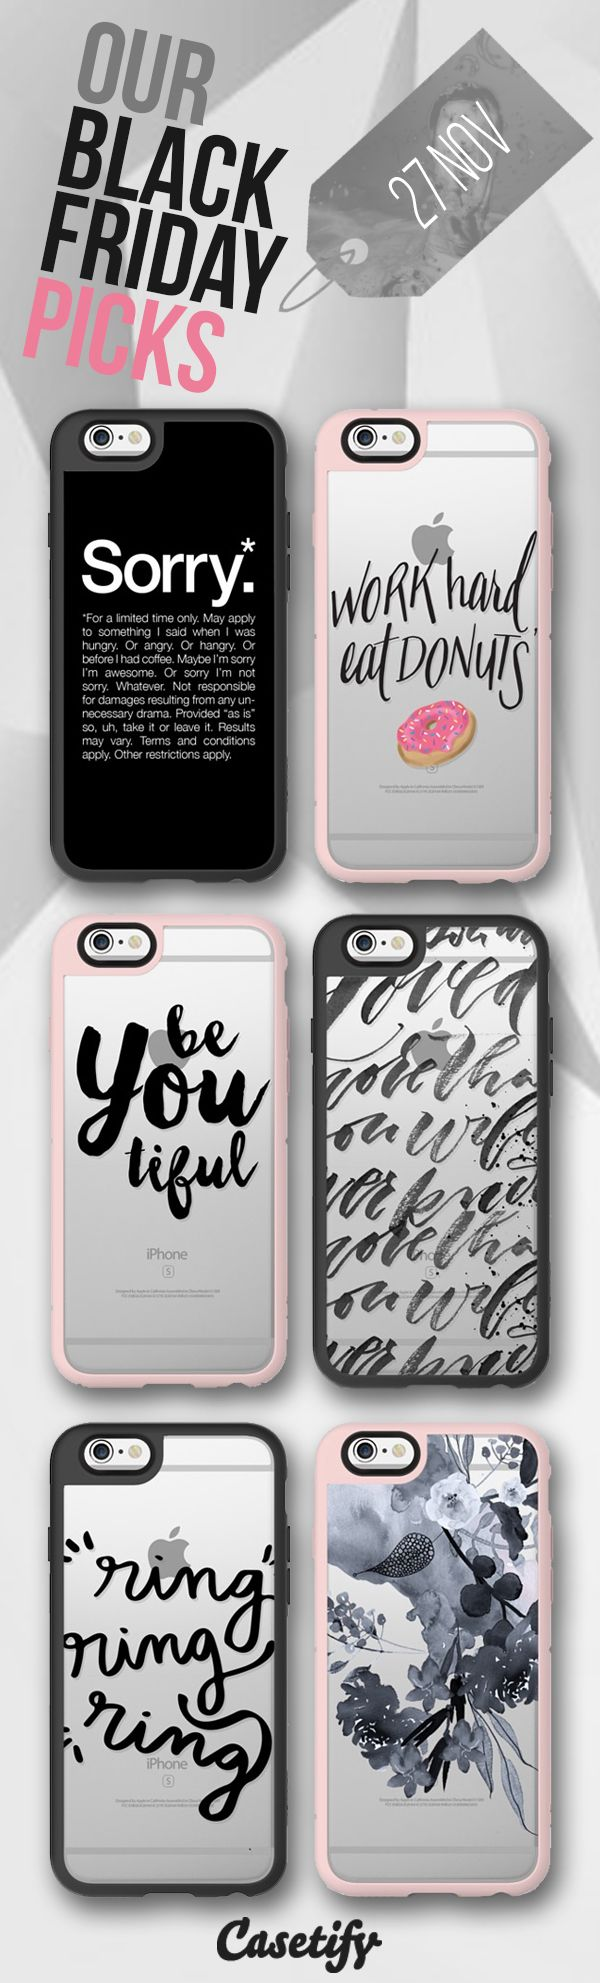 Black Friday & Cyber Monday is just around the corner. Don't miss the biggest sale of the year - plan ahead and add in your favourites into your basket now! Shop our Black Friday picks: http://www.casetify.com/artworks/fzF7z9L4Yq